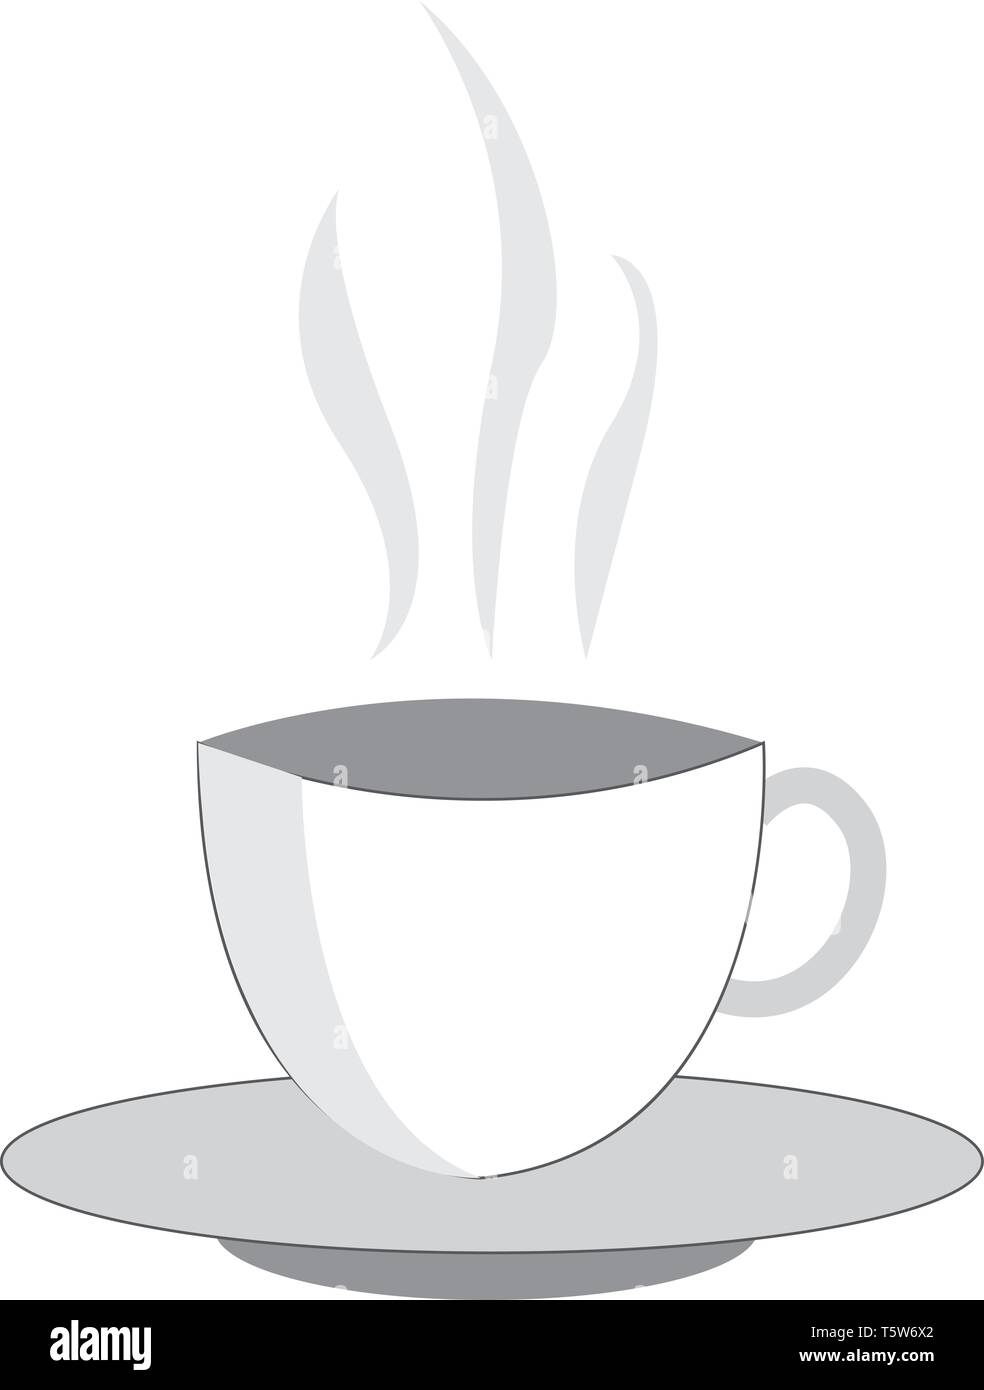 A Drawing Of A Set Of White Cup And Saucer Which Has Hot Liquid With Steam Coming Up Vector Color Drawing Or Illustration Stock Vector Image Art Alamy